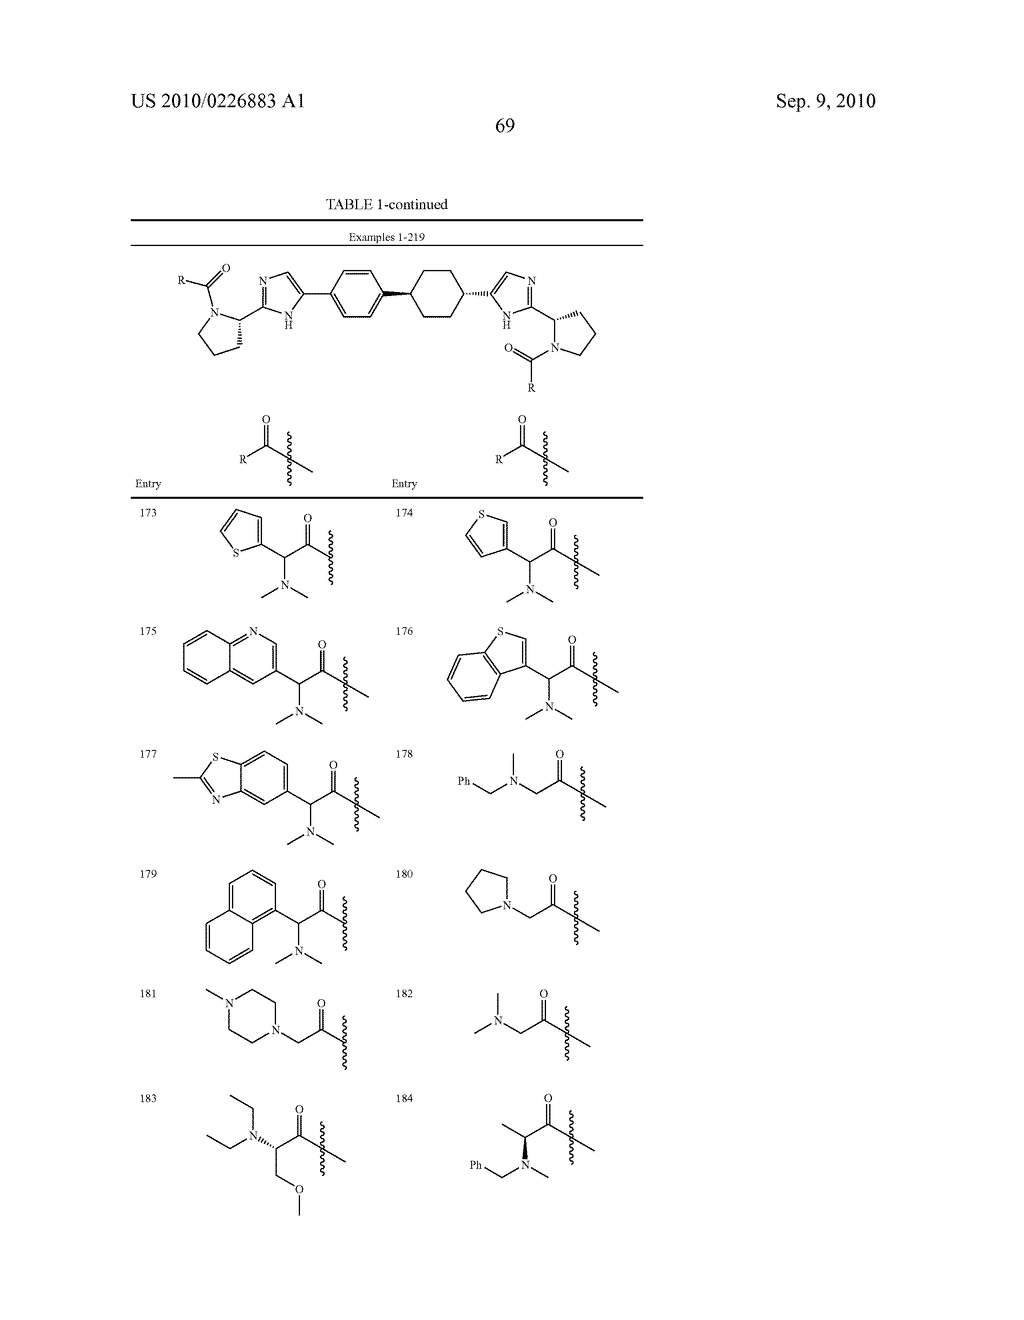 LINKED DIIMIDAZOLE DERIVATIVES - diagram, schematic, and image 70